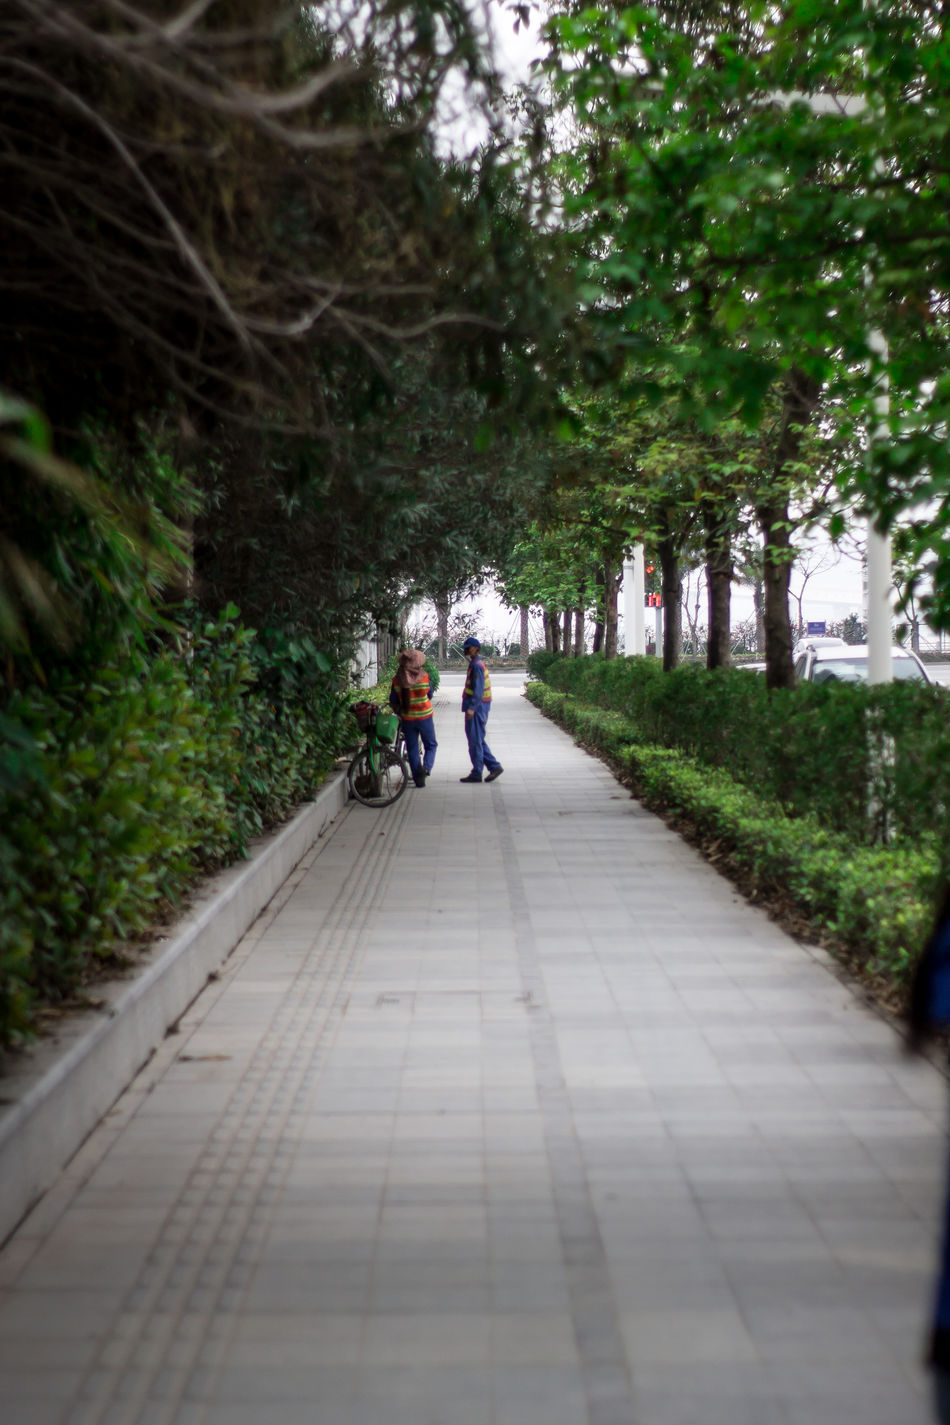 Break Time China Day Depth Of Field Full Length Nature Outdoors People Perspective Real People Side View The Way Forward Tree Two People Walking Workers Zhuhai